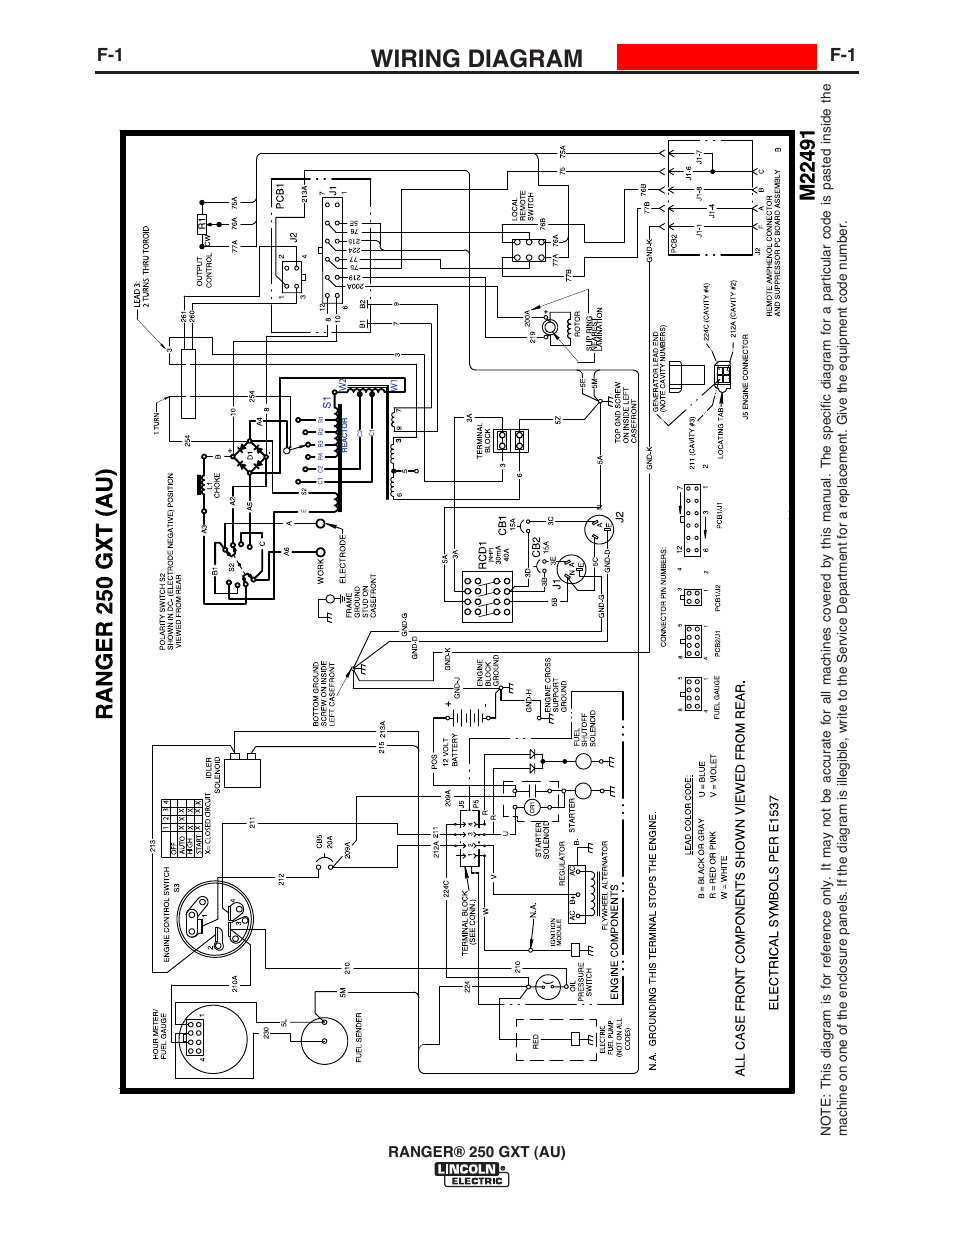 lincoln wiring diagram wiring schematic diagram rh theodocle fion com 1999  lincoln town car wiring diagram 1999 lincoln navigator radio wiring diagram